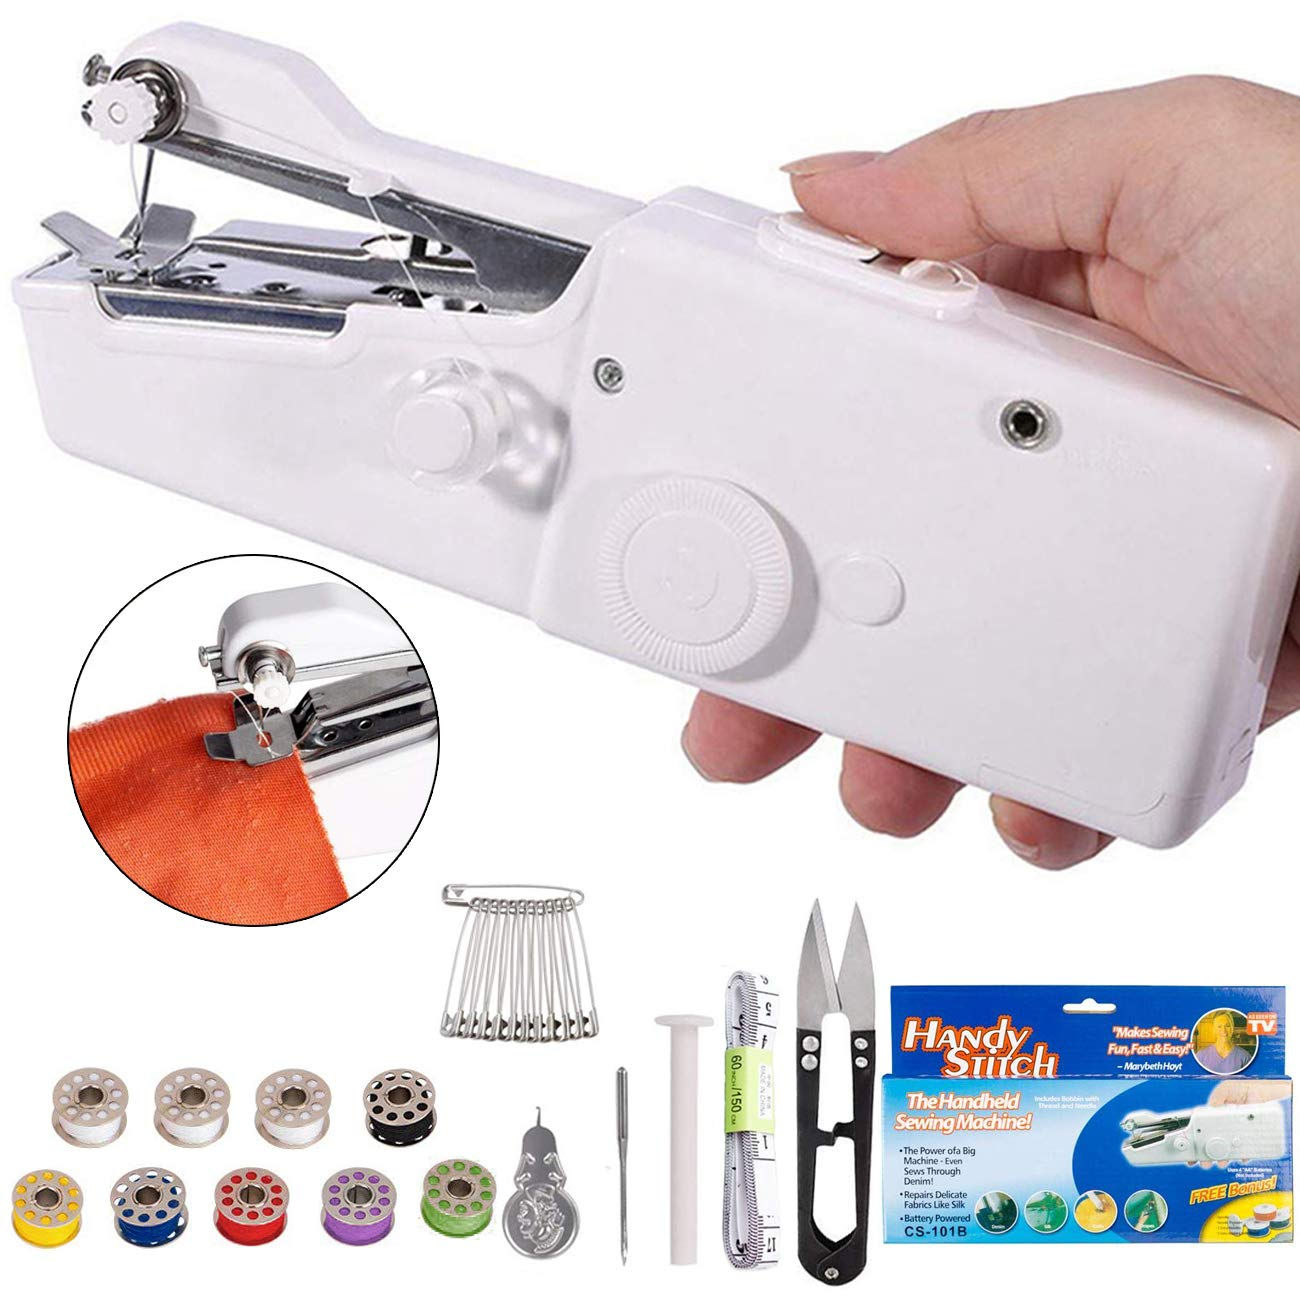 DUTISON Handheld Sewing Machine - Mini Cordless Portable Electric Sewing Machine - Home Handy Stitch for Clothes Quick Repairing with 15 Accessories by DUTISON